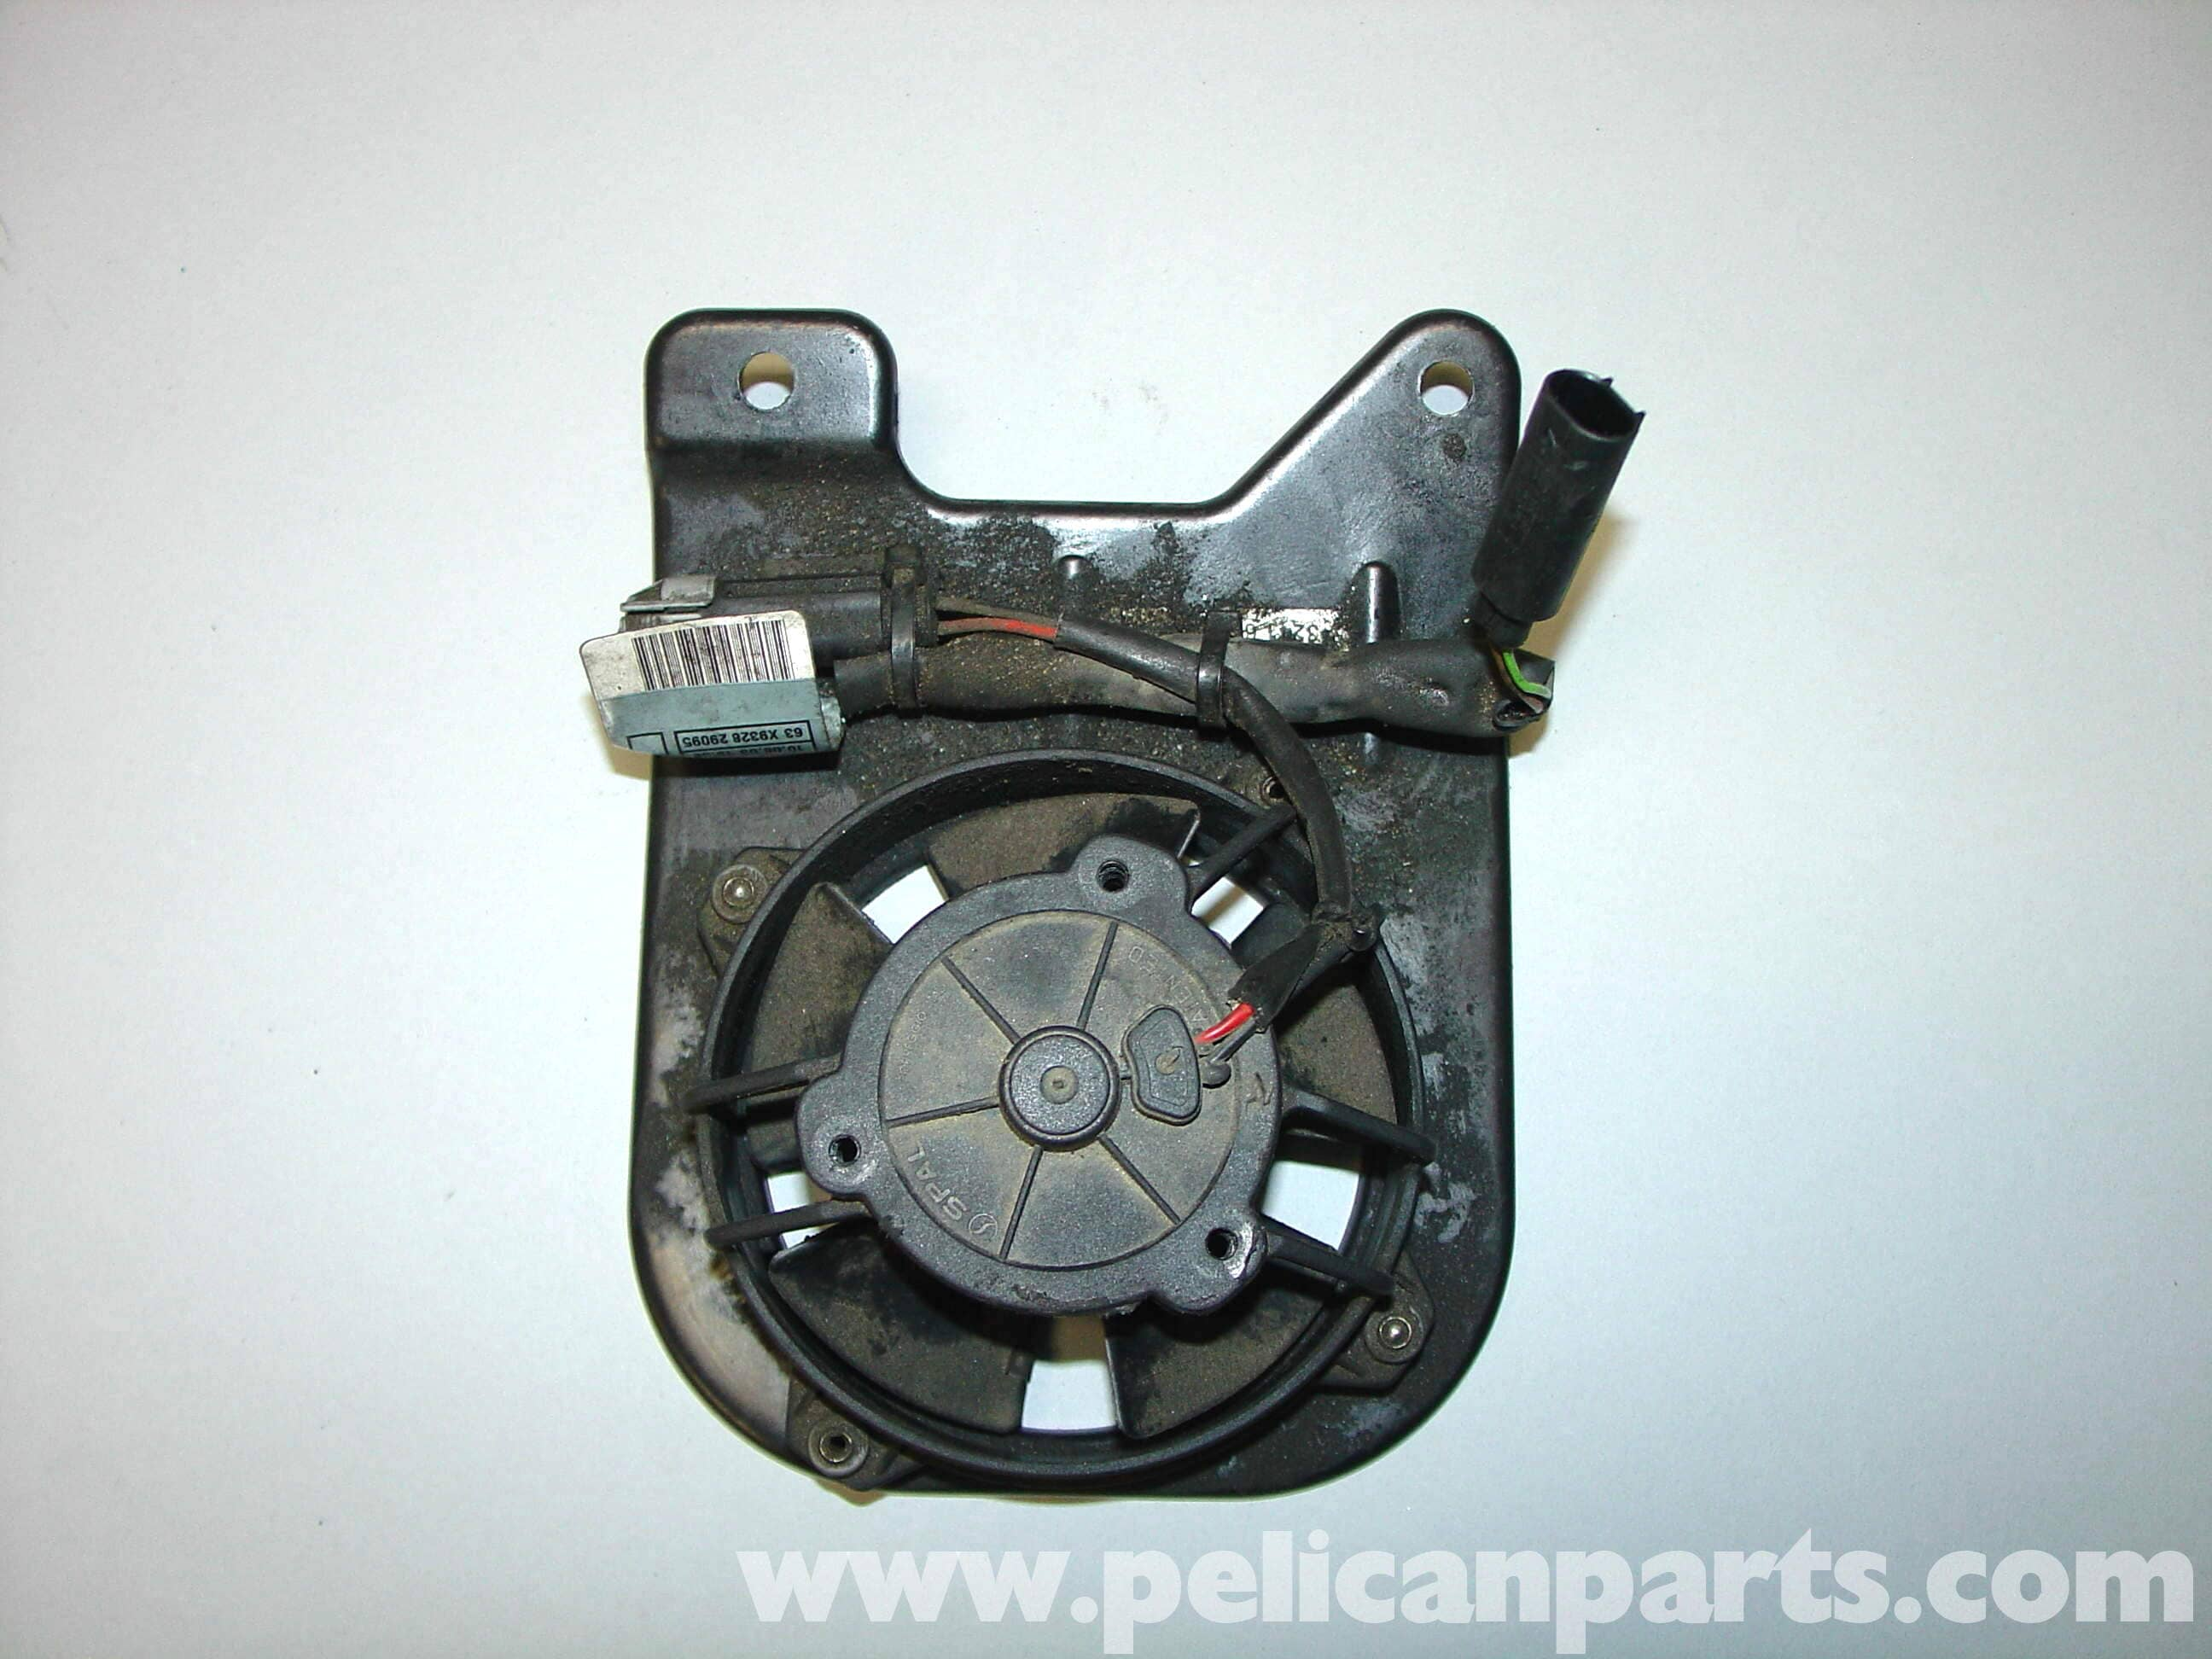 Mini Cooper Power Steering Fan Replacement R50 R52 R53 2001 2006 Renault Scenic Fuse Box Under Bonnet Large Image Extra